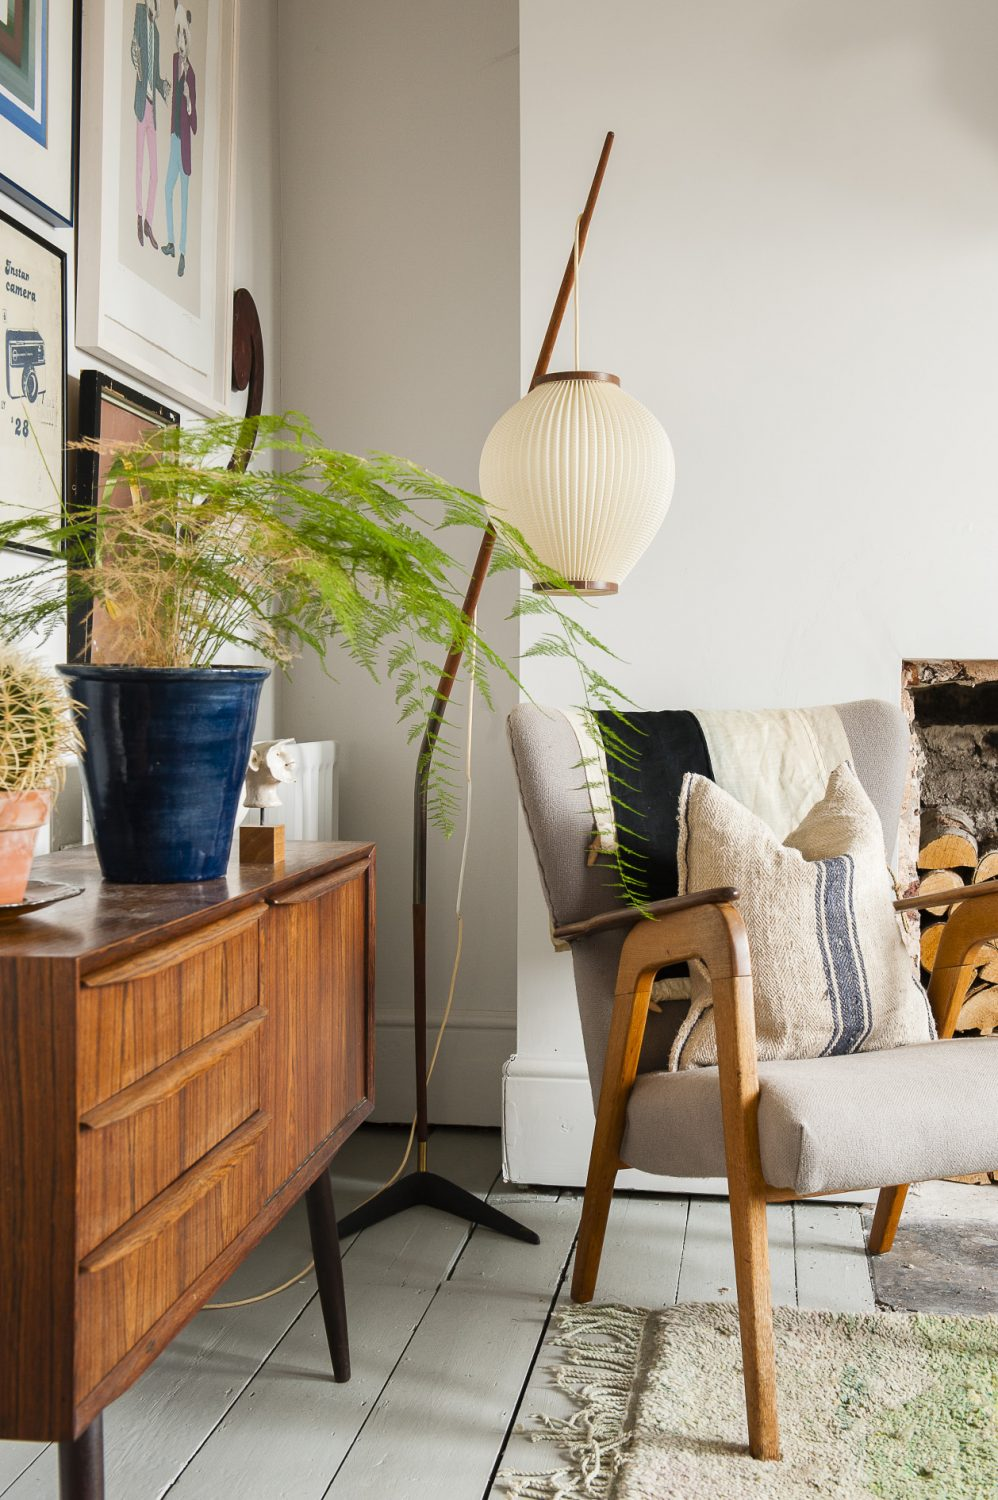 The sideboard in the studio is 1950s Danish by Hans Moebler, bought from designsofmodernity.com. The 'fishing rod' style lamp was a gift from two of the couple's closest friends, Andrew and Pip, who own Le Chien et Moi in Nottingham